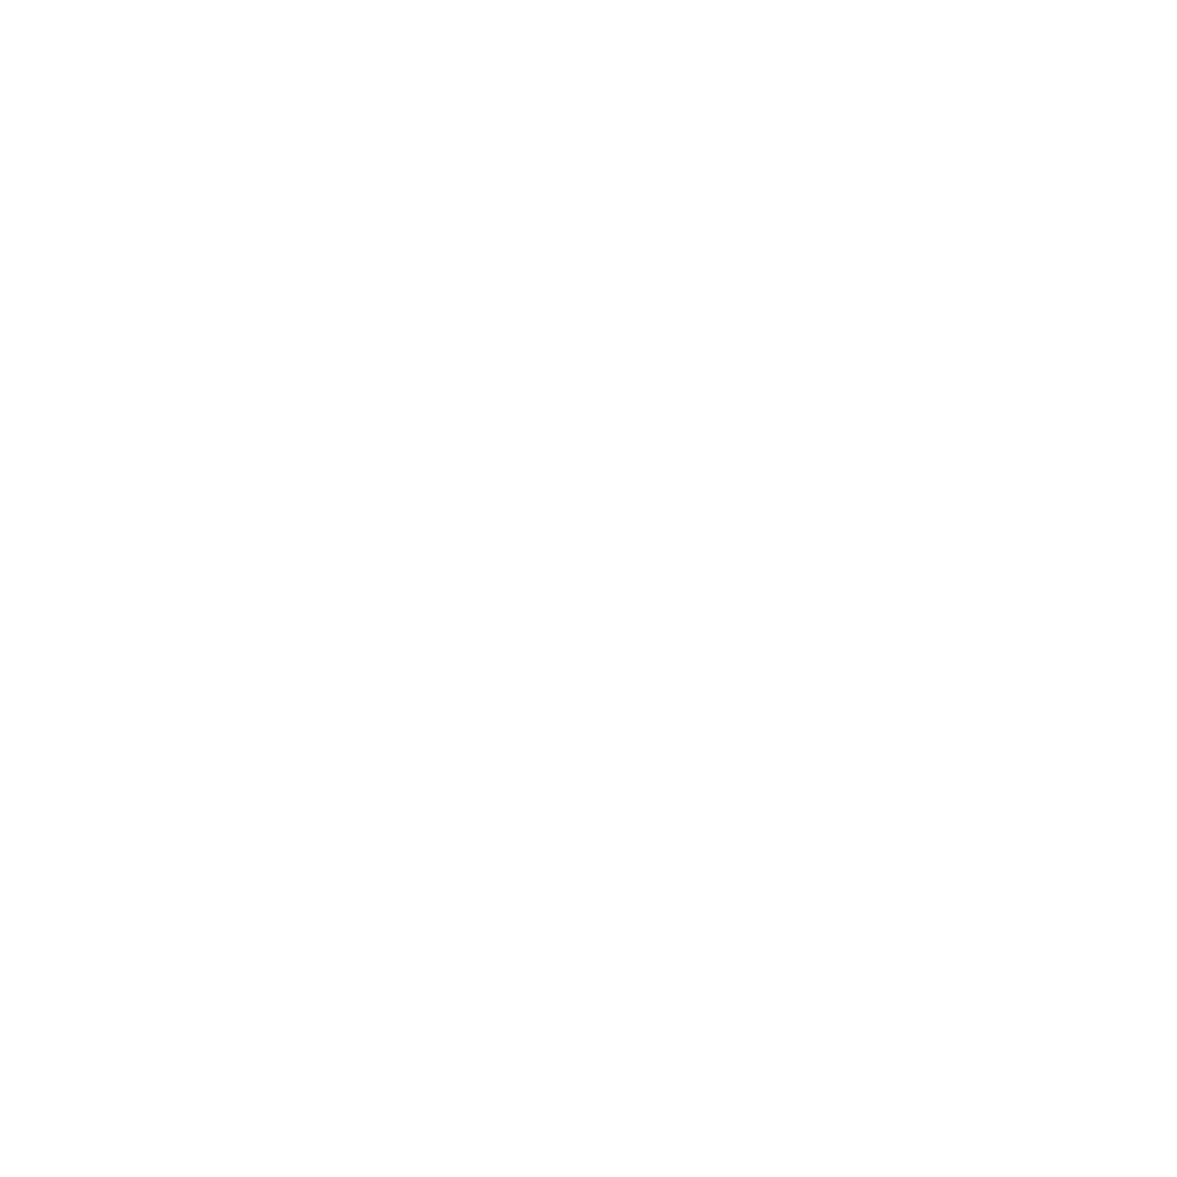 Psychoactive frog tessellation representing the development phase of their services